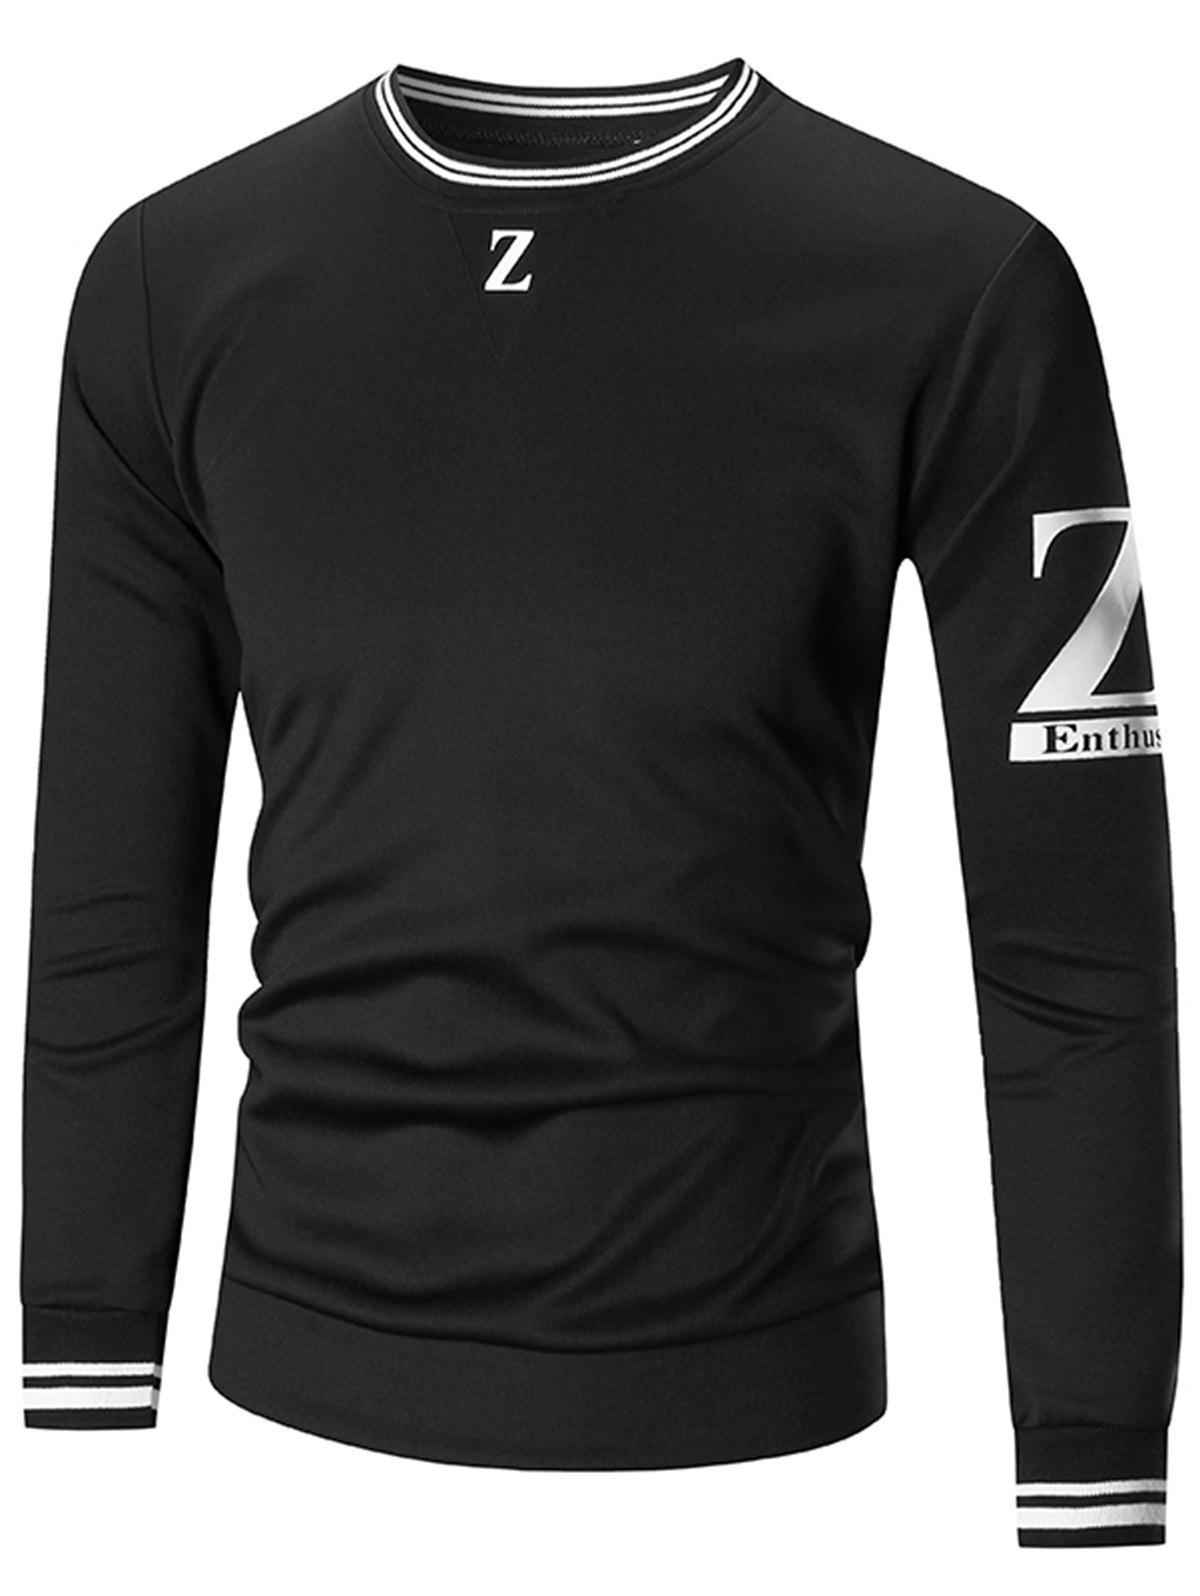 Z Print Crew Neck Sweatshirt - BLACK M